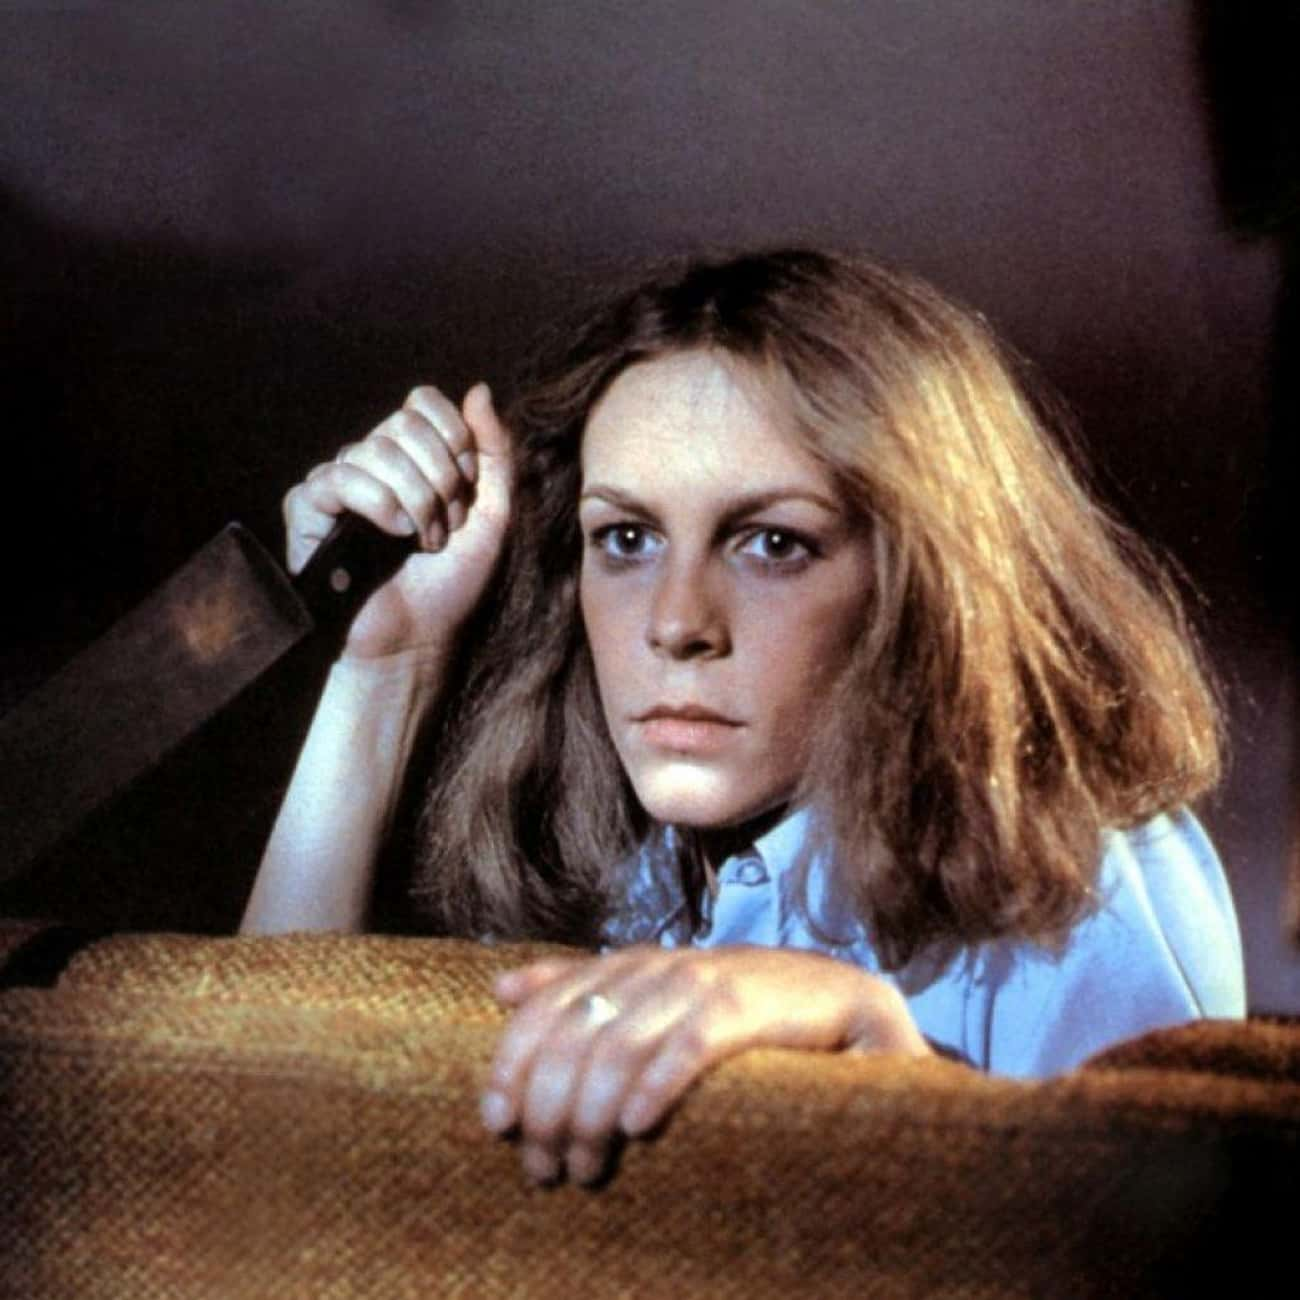 Taurus (April 20 - May 20): Laurie Strode, 'Halloween'